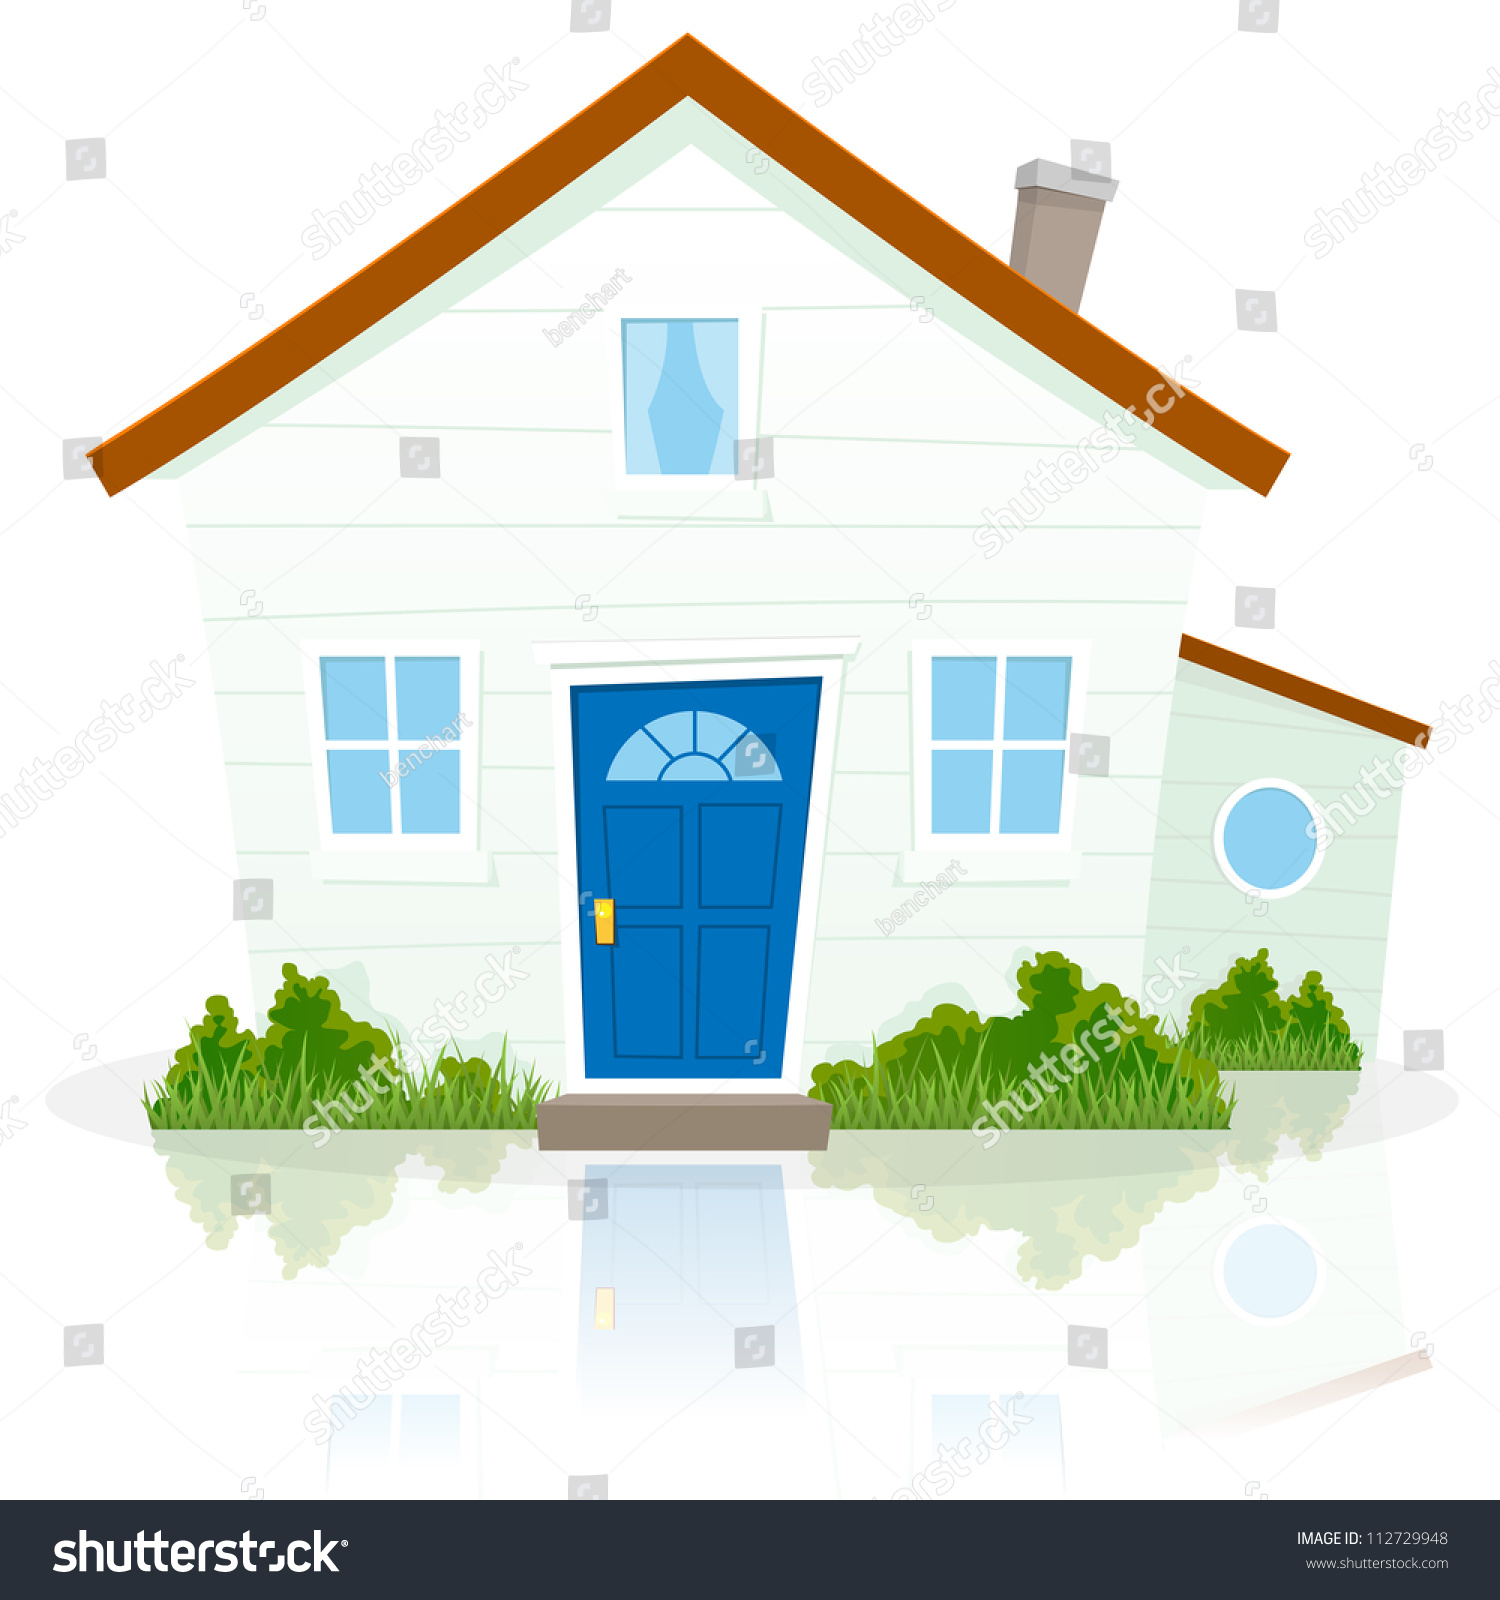 Simple house illustration images galleries with a bite - Images simple home ...